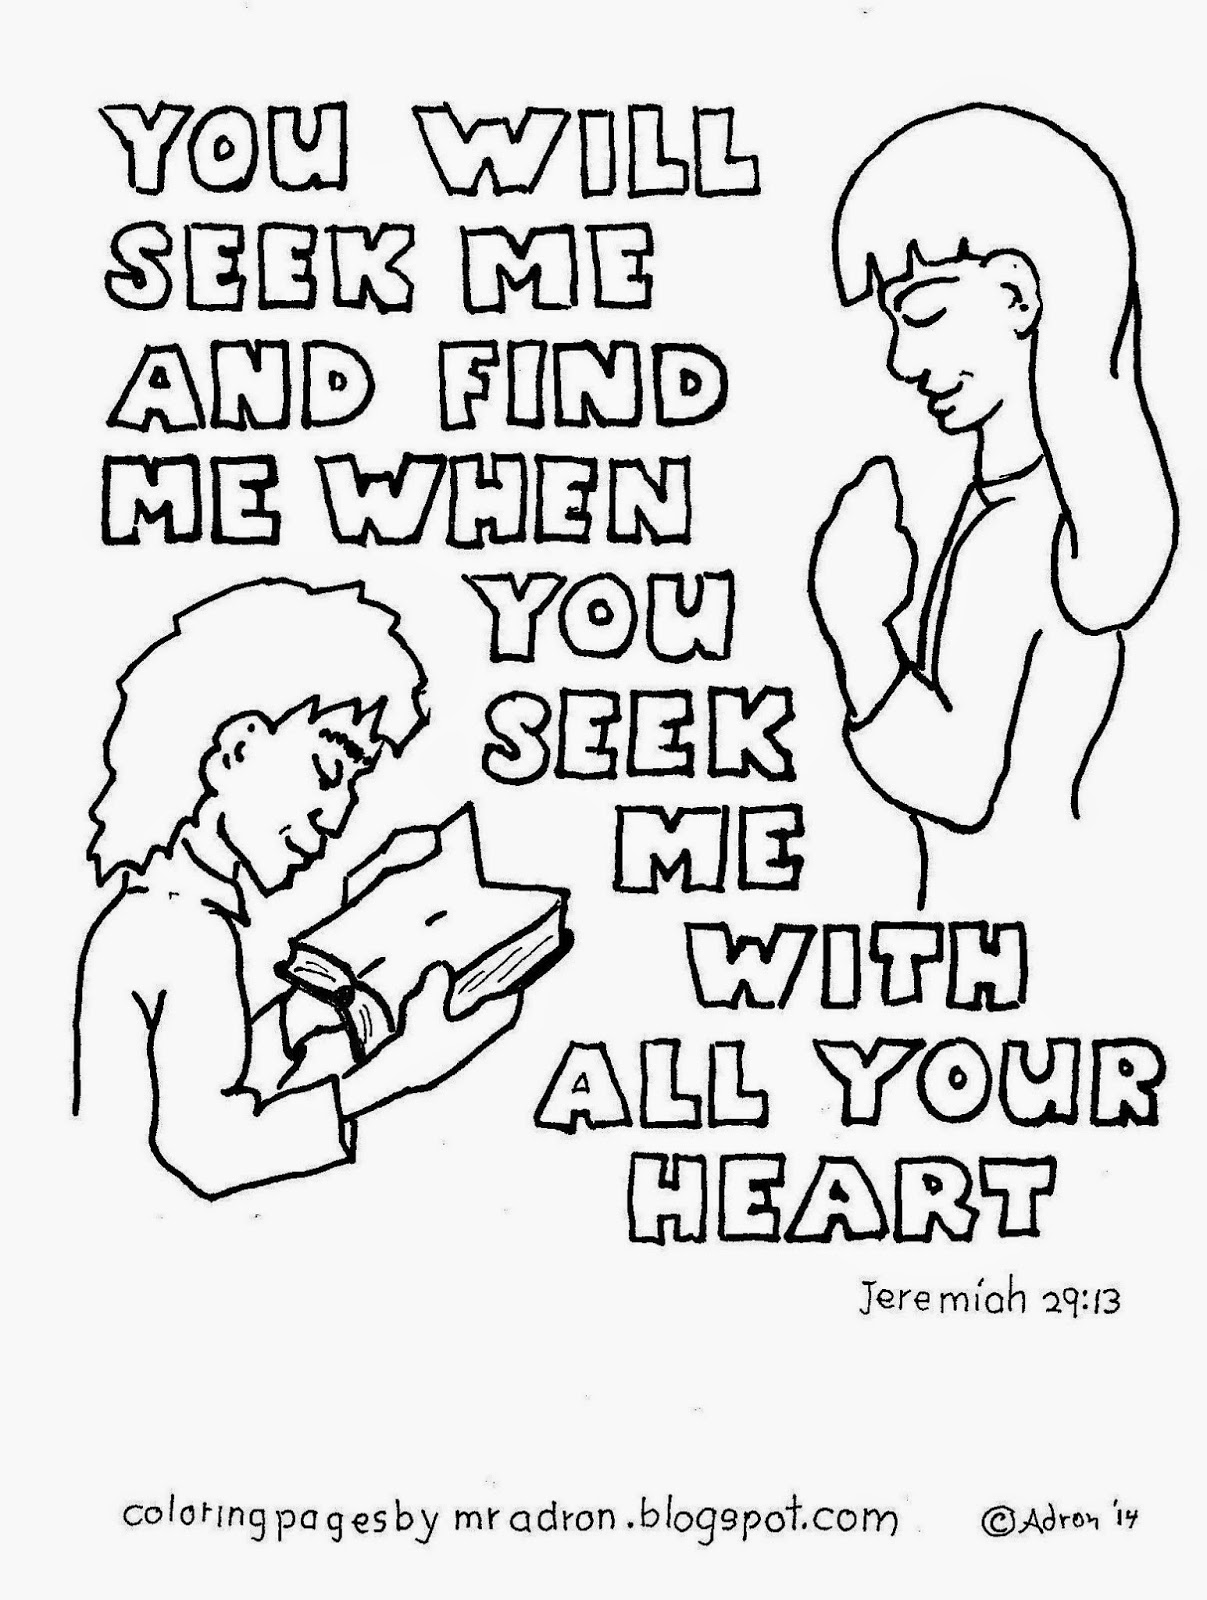 Coloring Pages for Kids by Mr. Adron: You Will Seek Me And